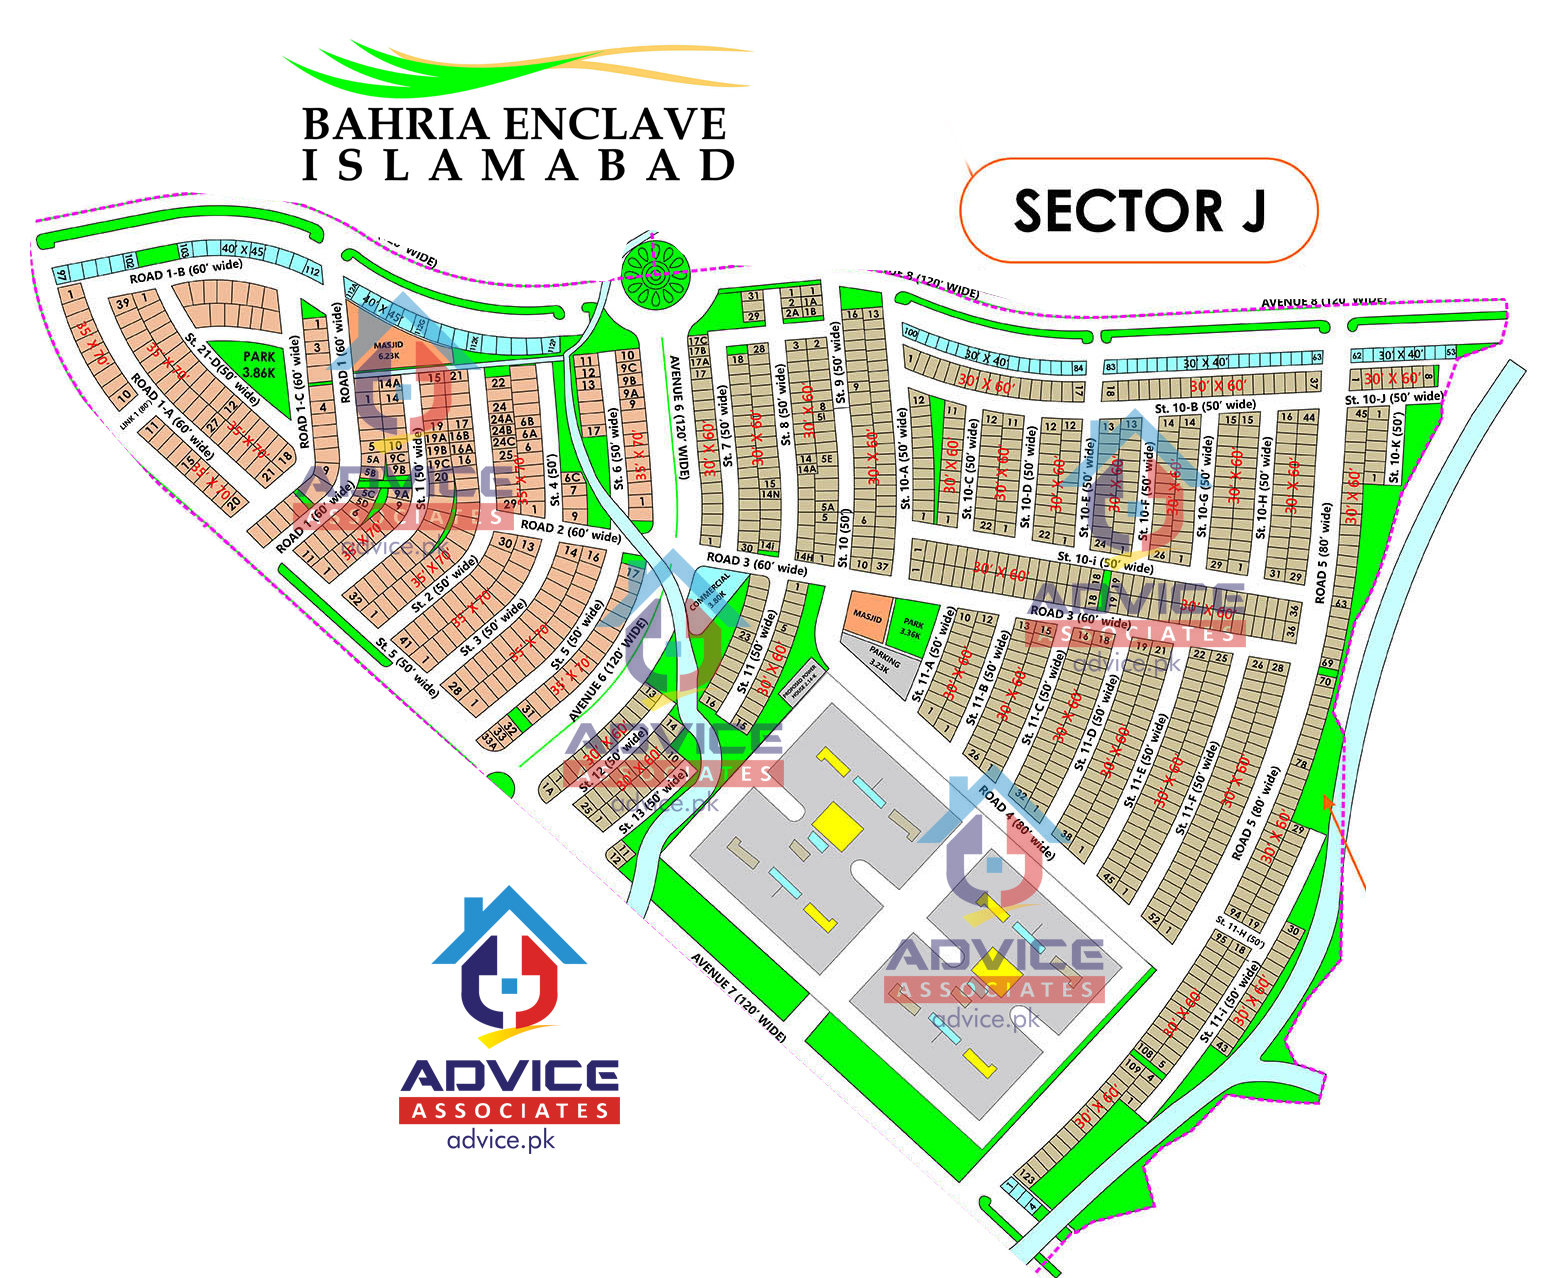 Bahria Enclave Sector J Map